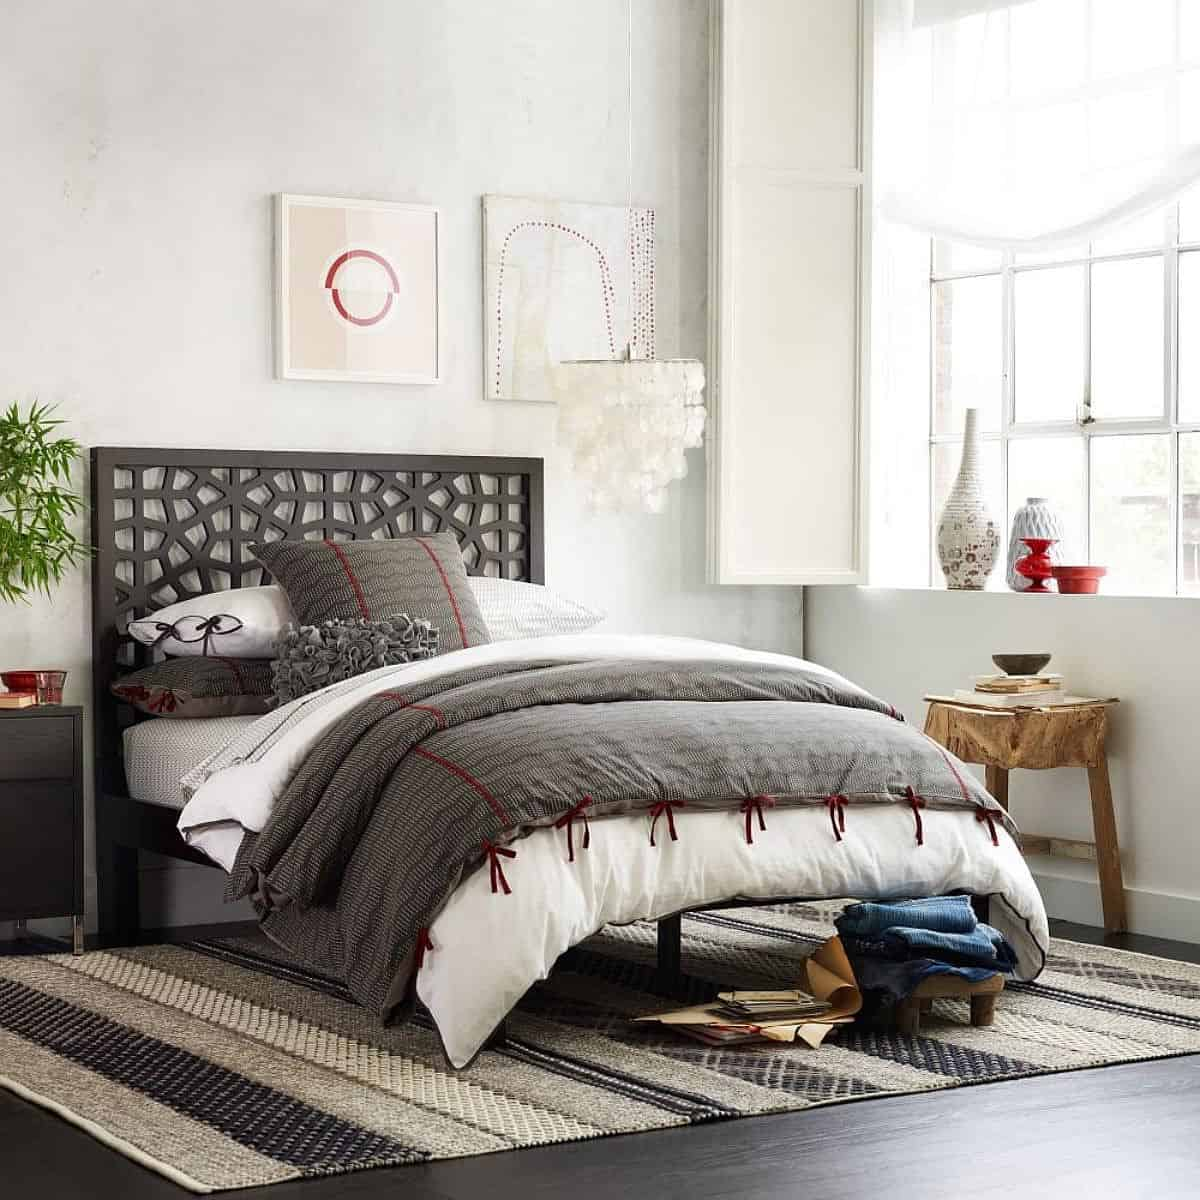 Morocco-inspired-headboard-deisgn-adds-to-the-style-of-contemporary-bedroom-West-Elm